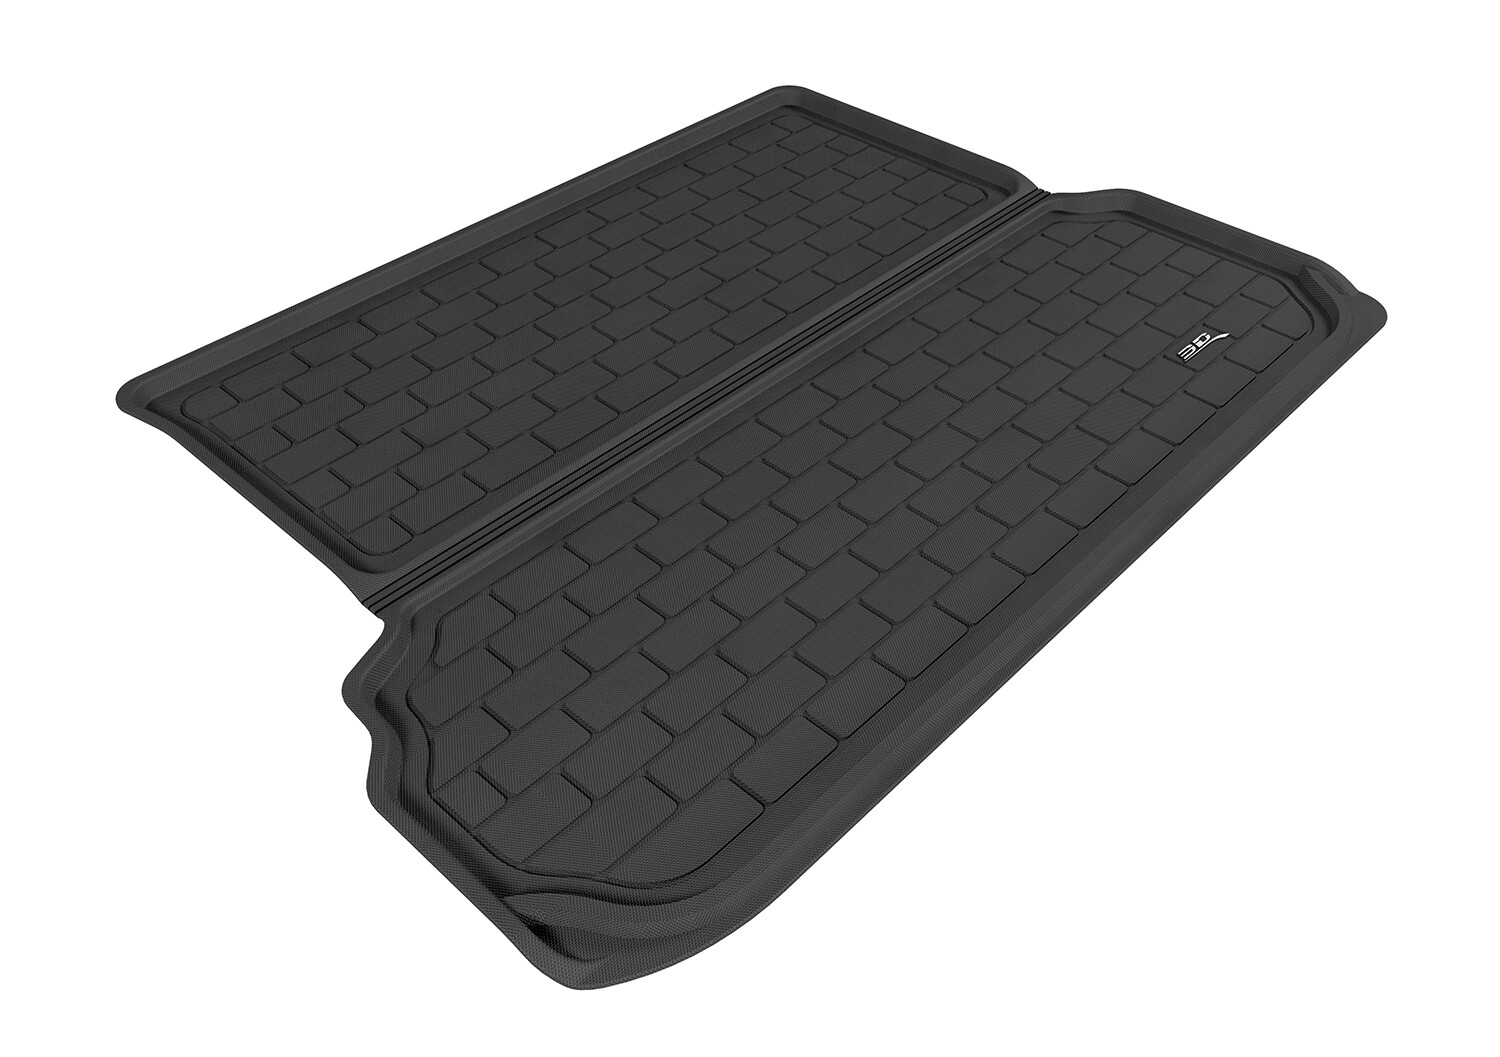 3D MAXpider Complete set TOYOTA Prado 150, Will not fit Made in Japan 2010-2020 KAGU car mat CARGO LINER